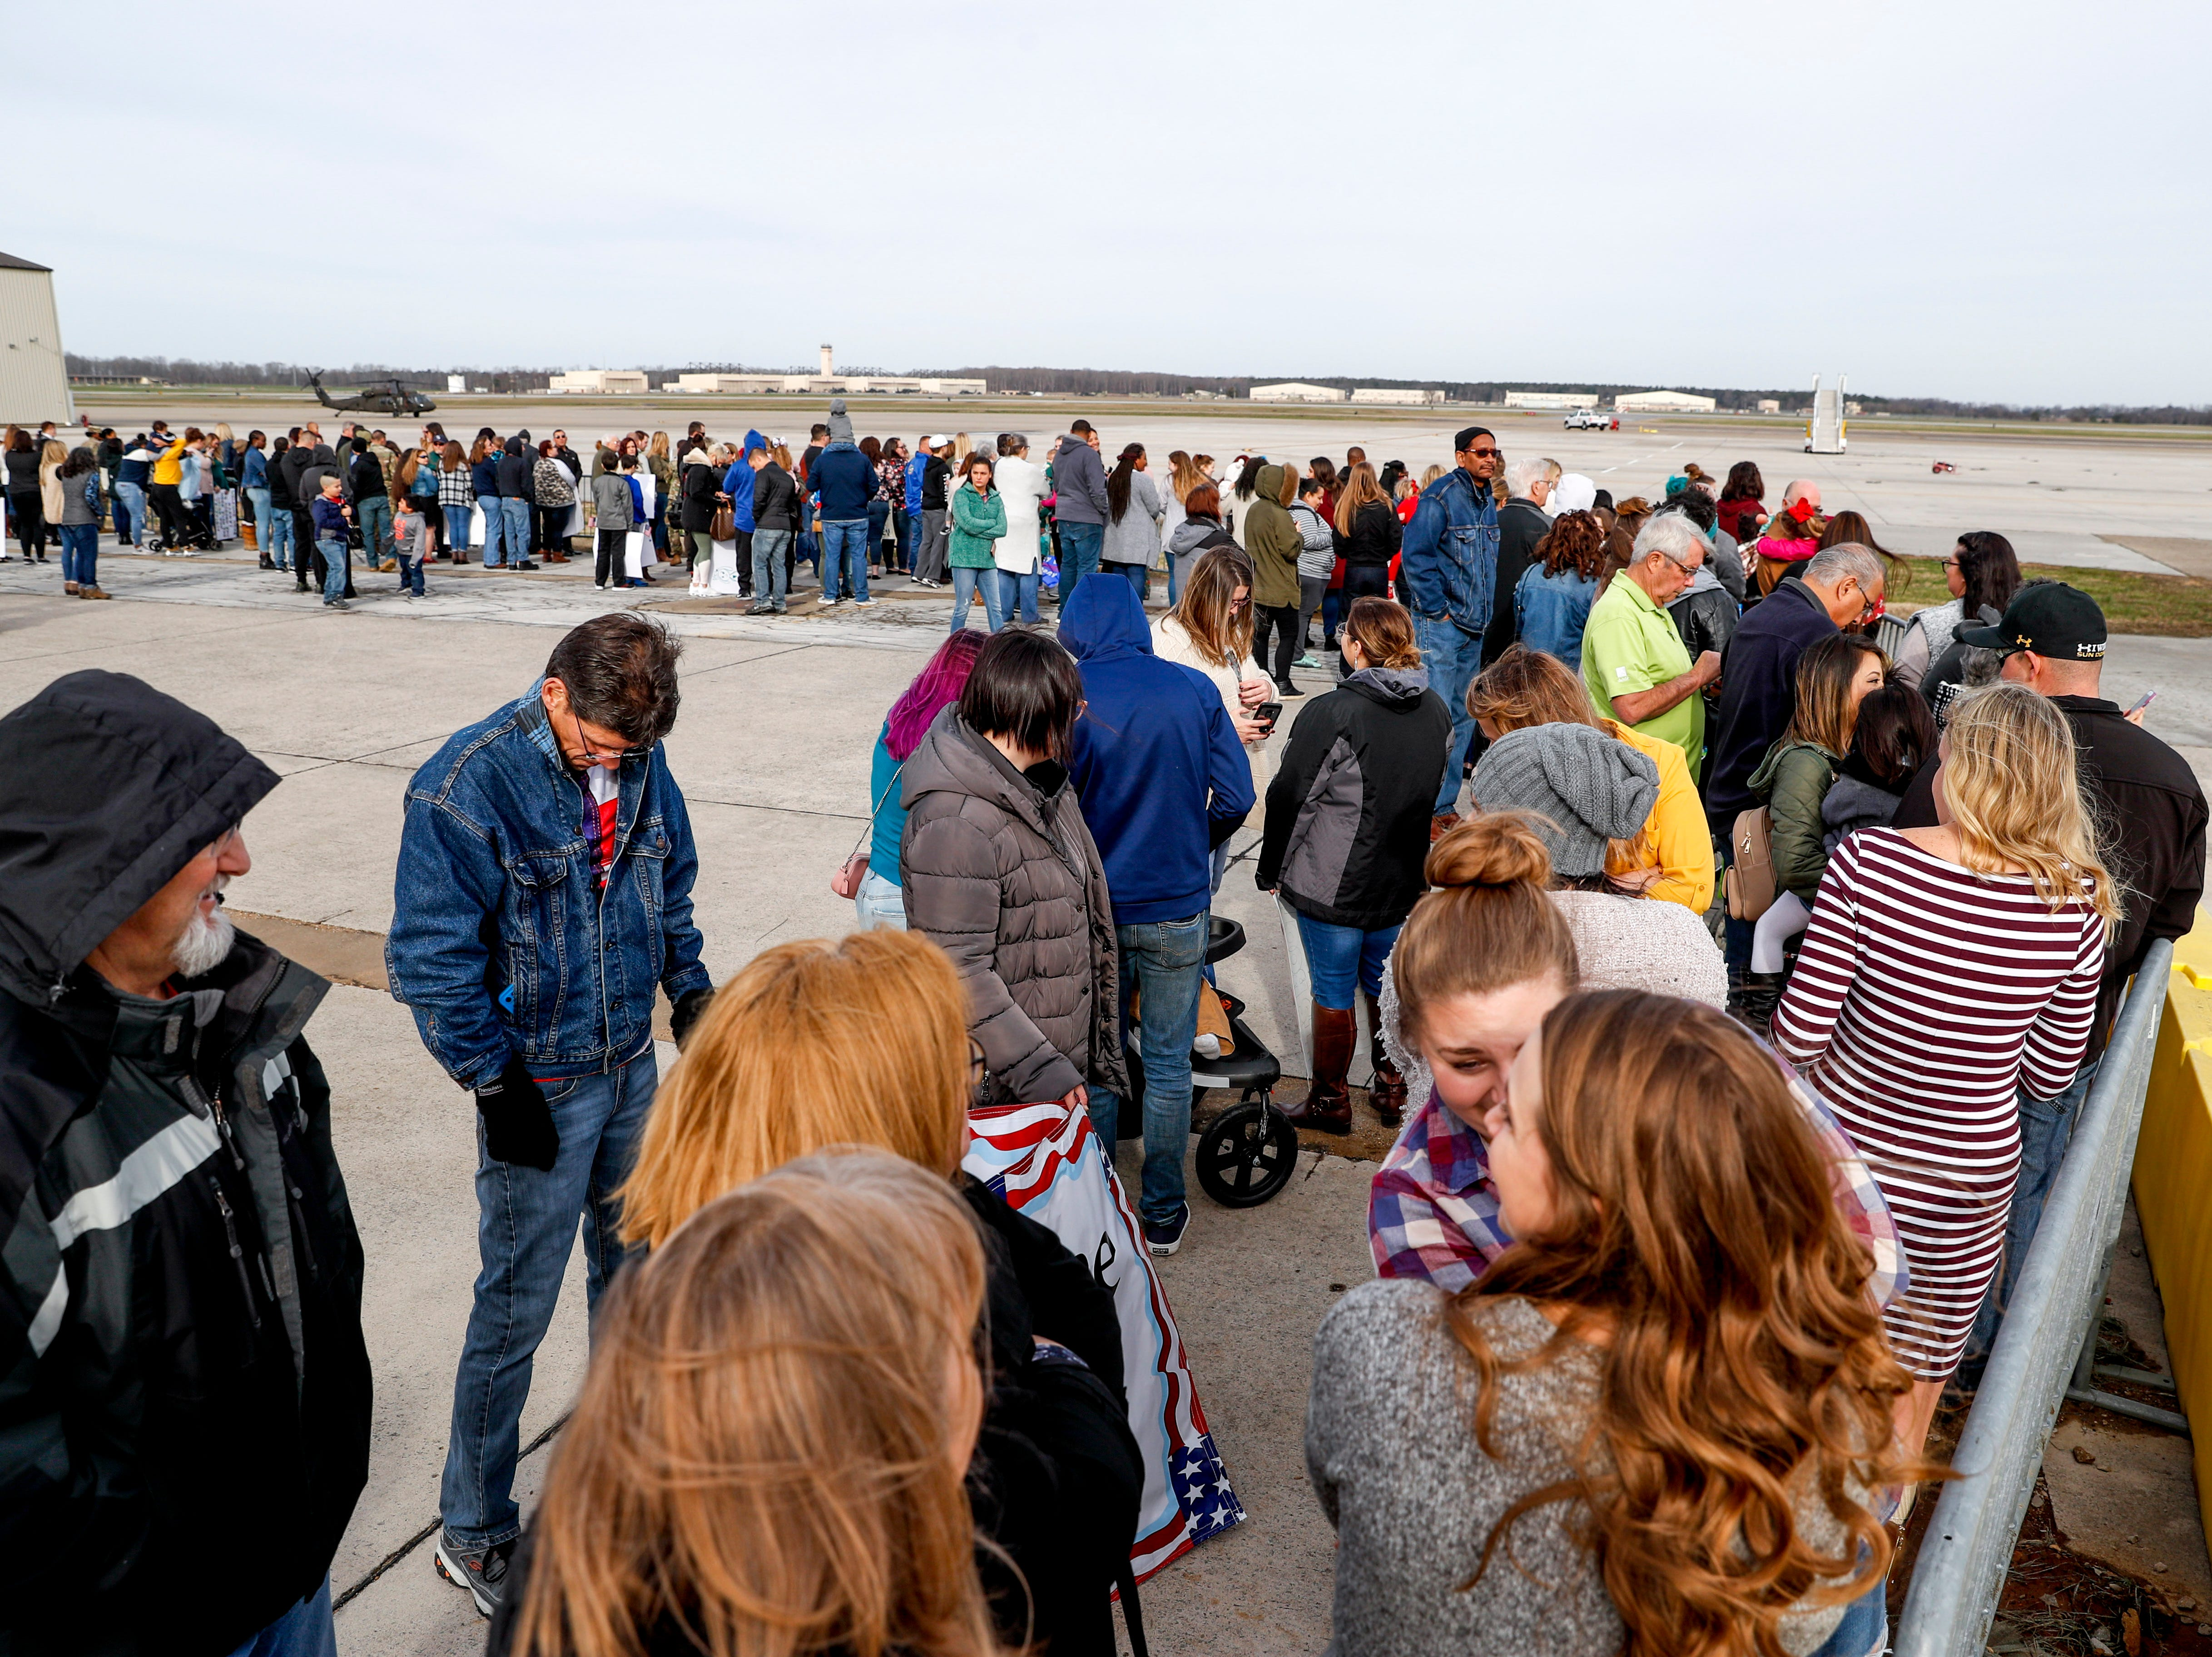 Family members line up against fencing waiting to see loved ones returning from deployment in Afghanistan during the return of soldiers from the 101st Combat Aviation Brigade of 101st Airborne Division (Air Assault) at Campbell Army Air Field in Fort Campbell, KY., on Sunday, March 10, 2019.